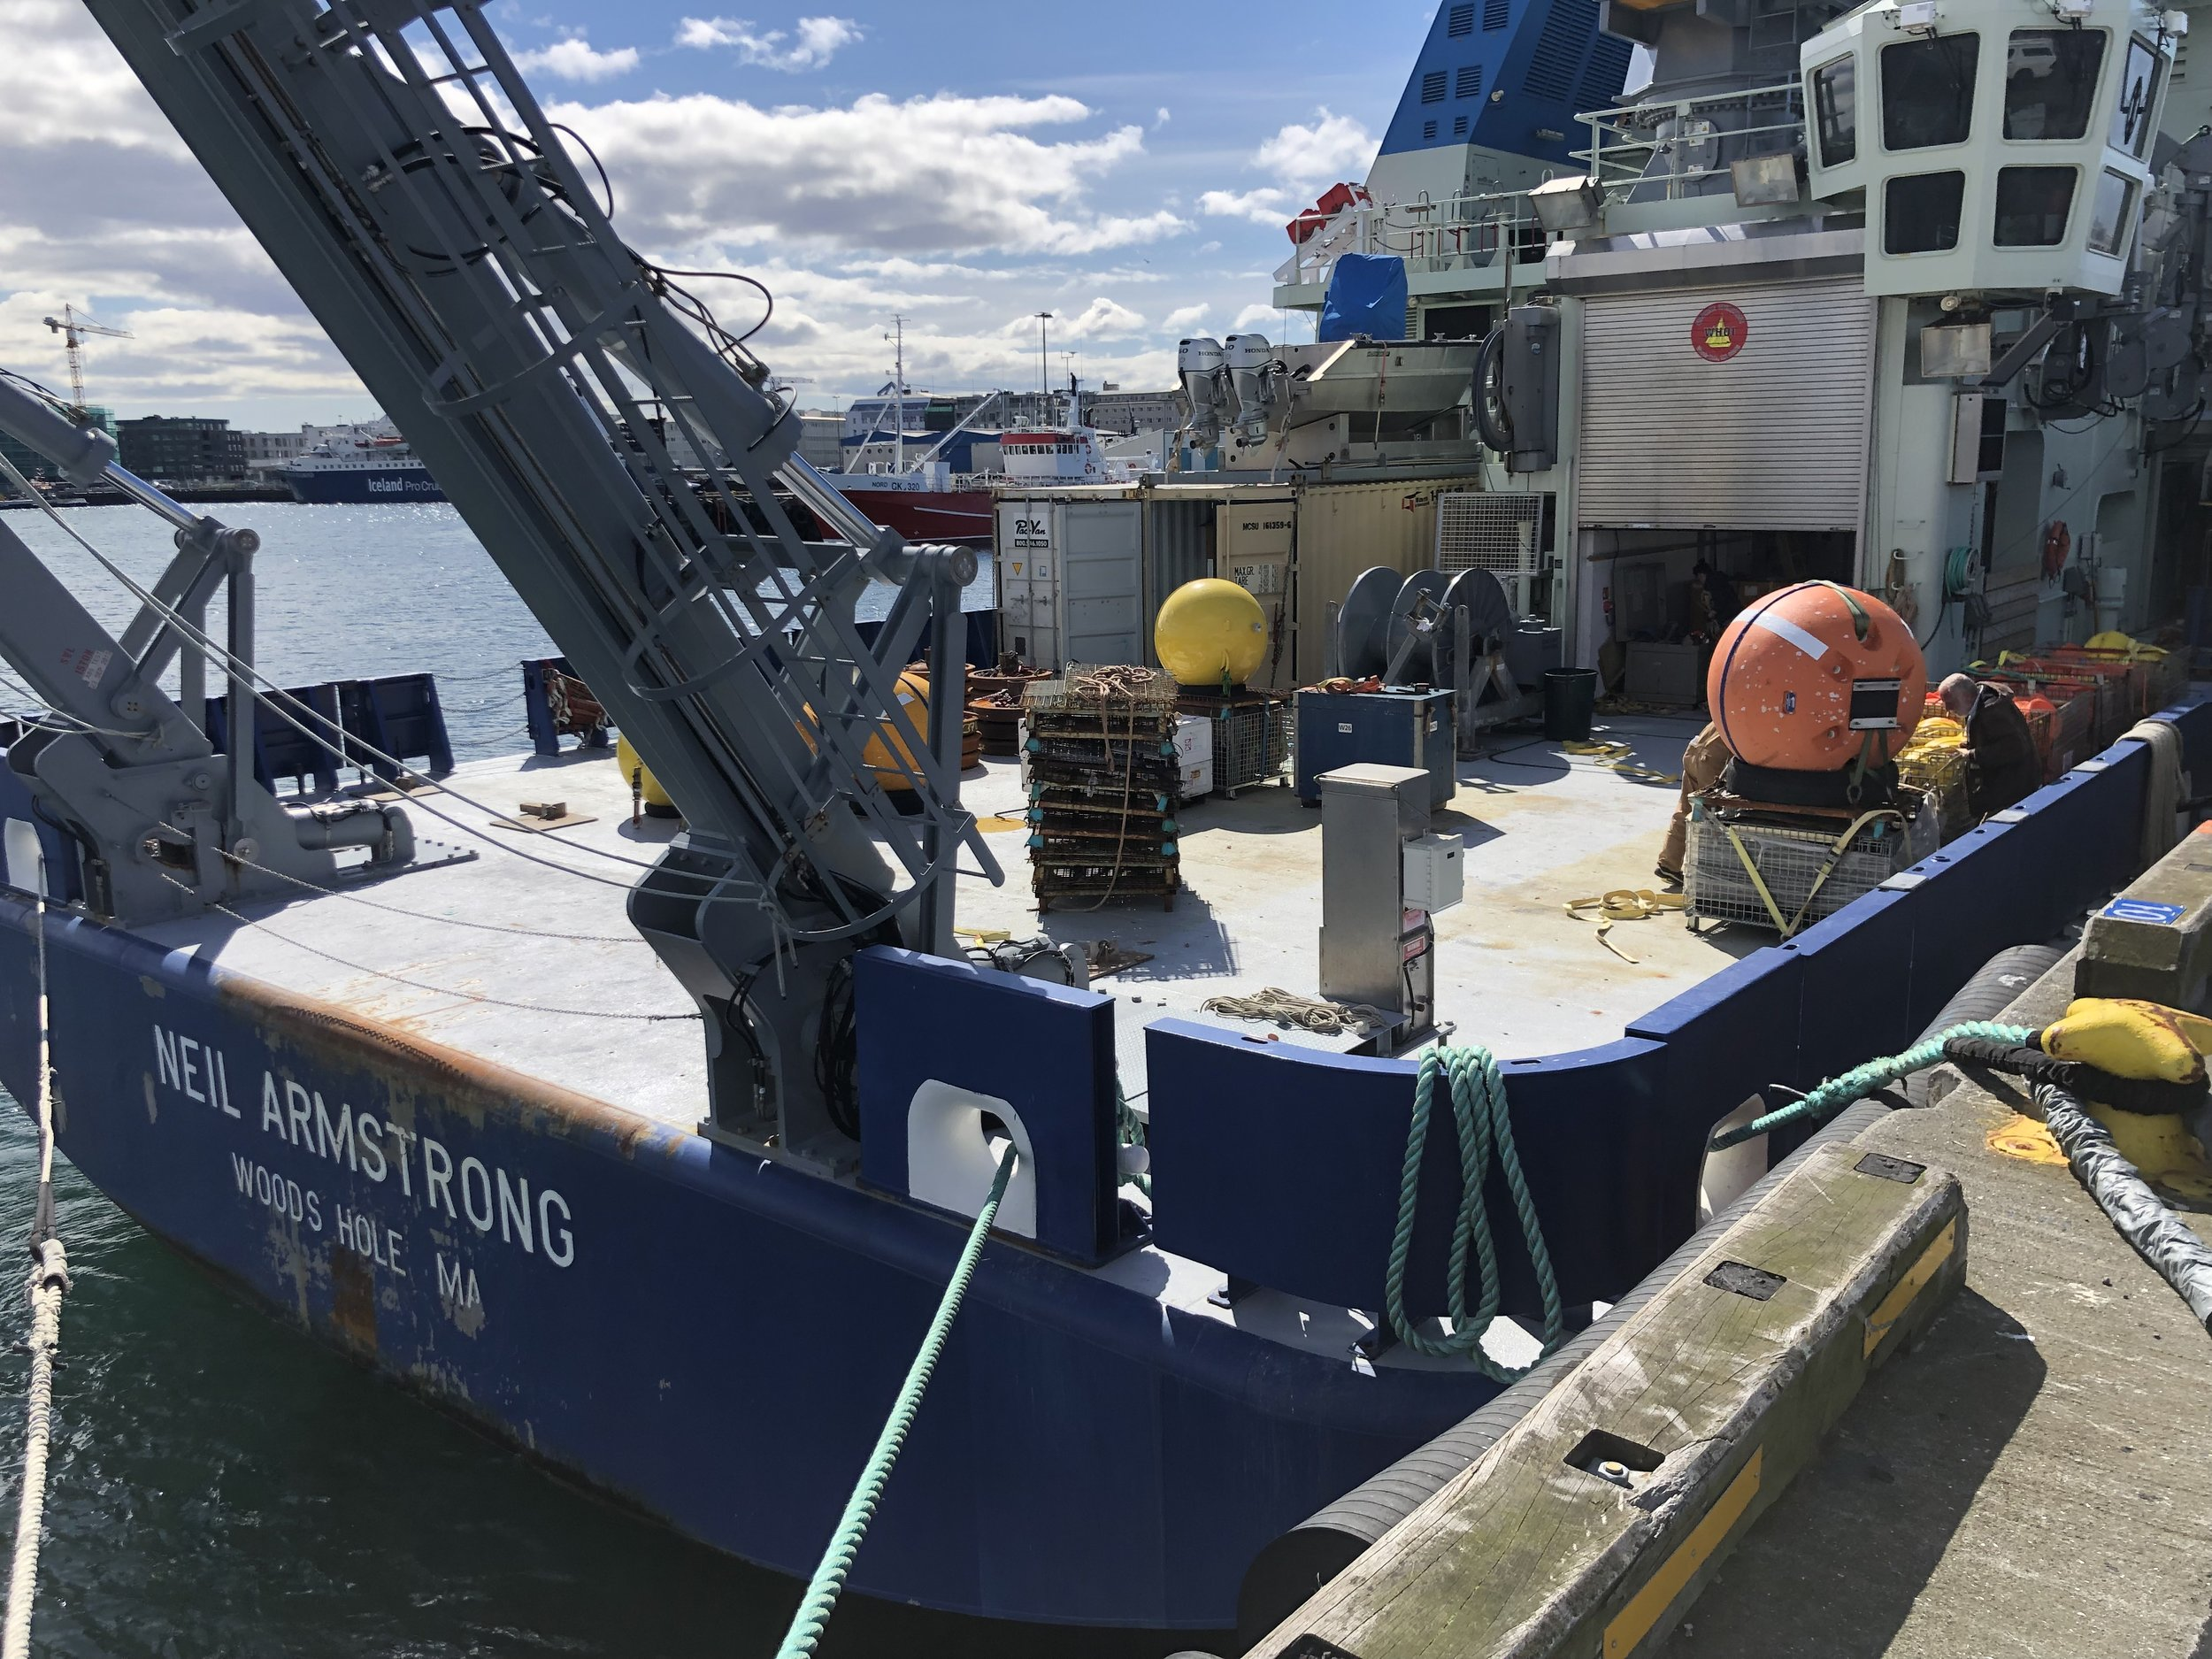 The crew told us they were sailing the waters near Iceland studying the effect climate change has had on ocean currents.